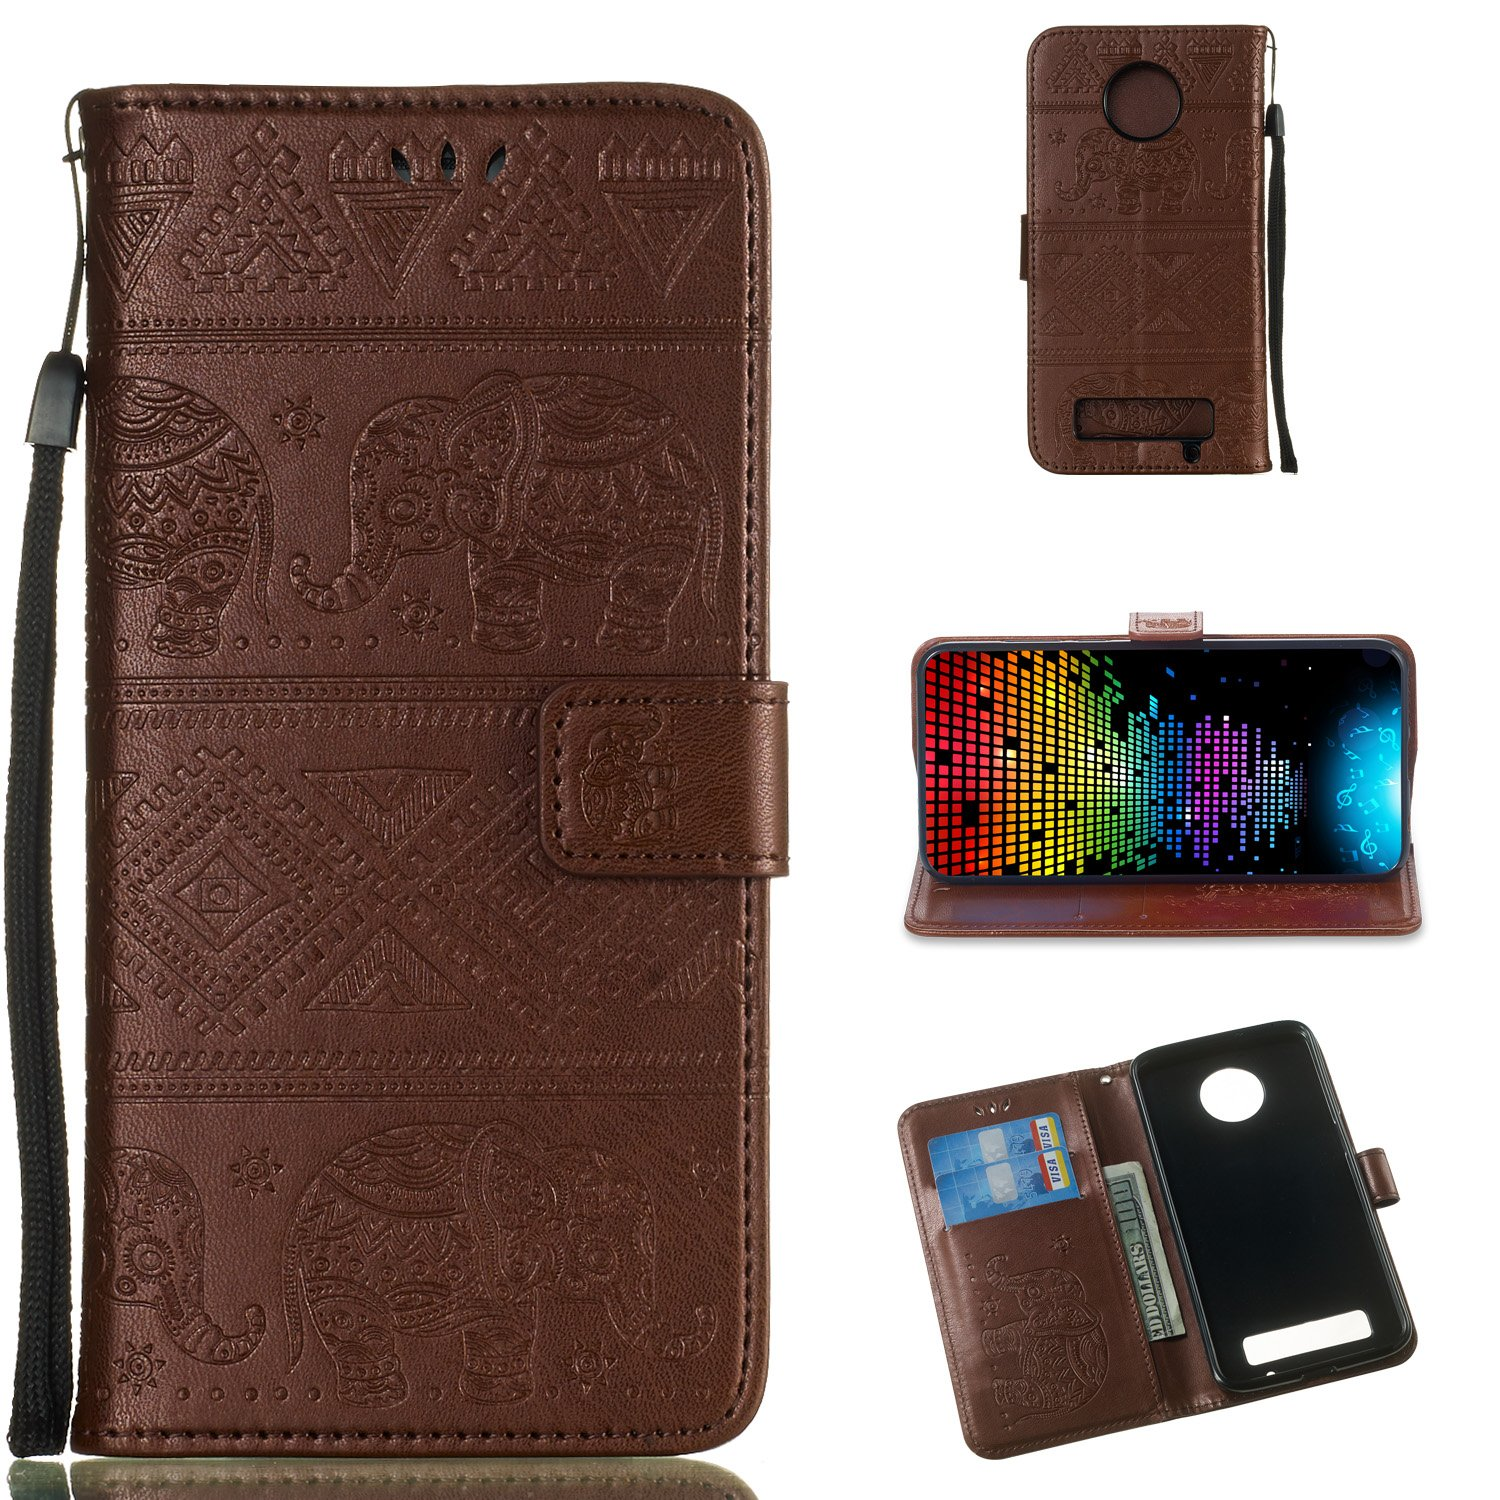 DAMONDY Moto Z3 Play Case, Elephant Embossed Flowers PU Leather Magnetic Flip Cover Stand Card Holders & Hand Strap Wallet Purse Case for Motorola Moto Z3 Play-brown